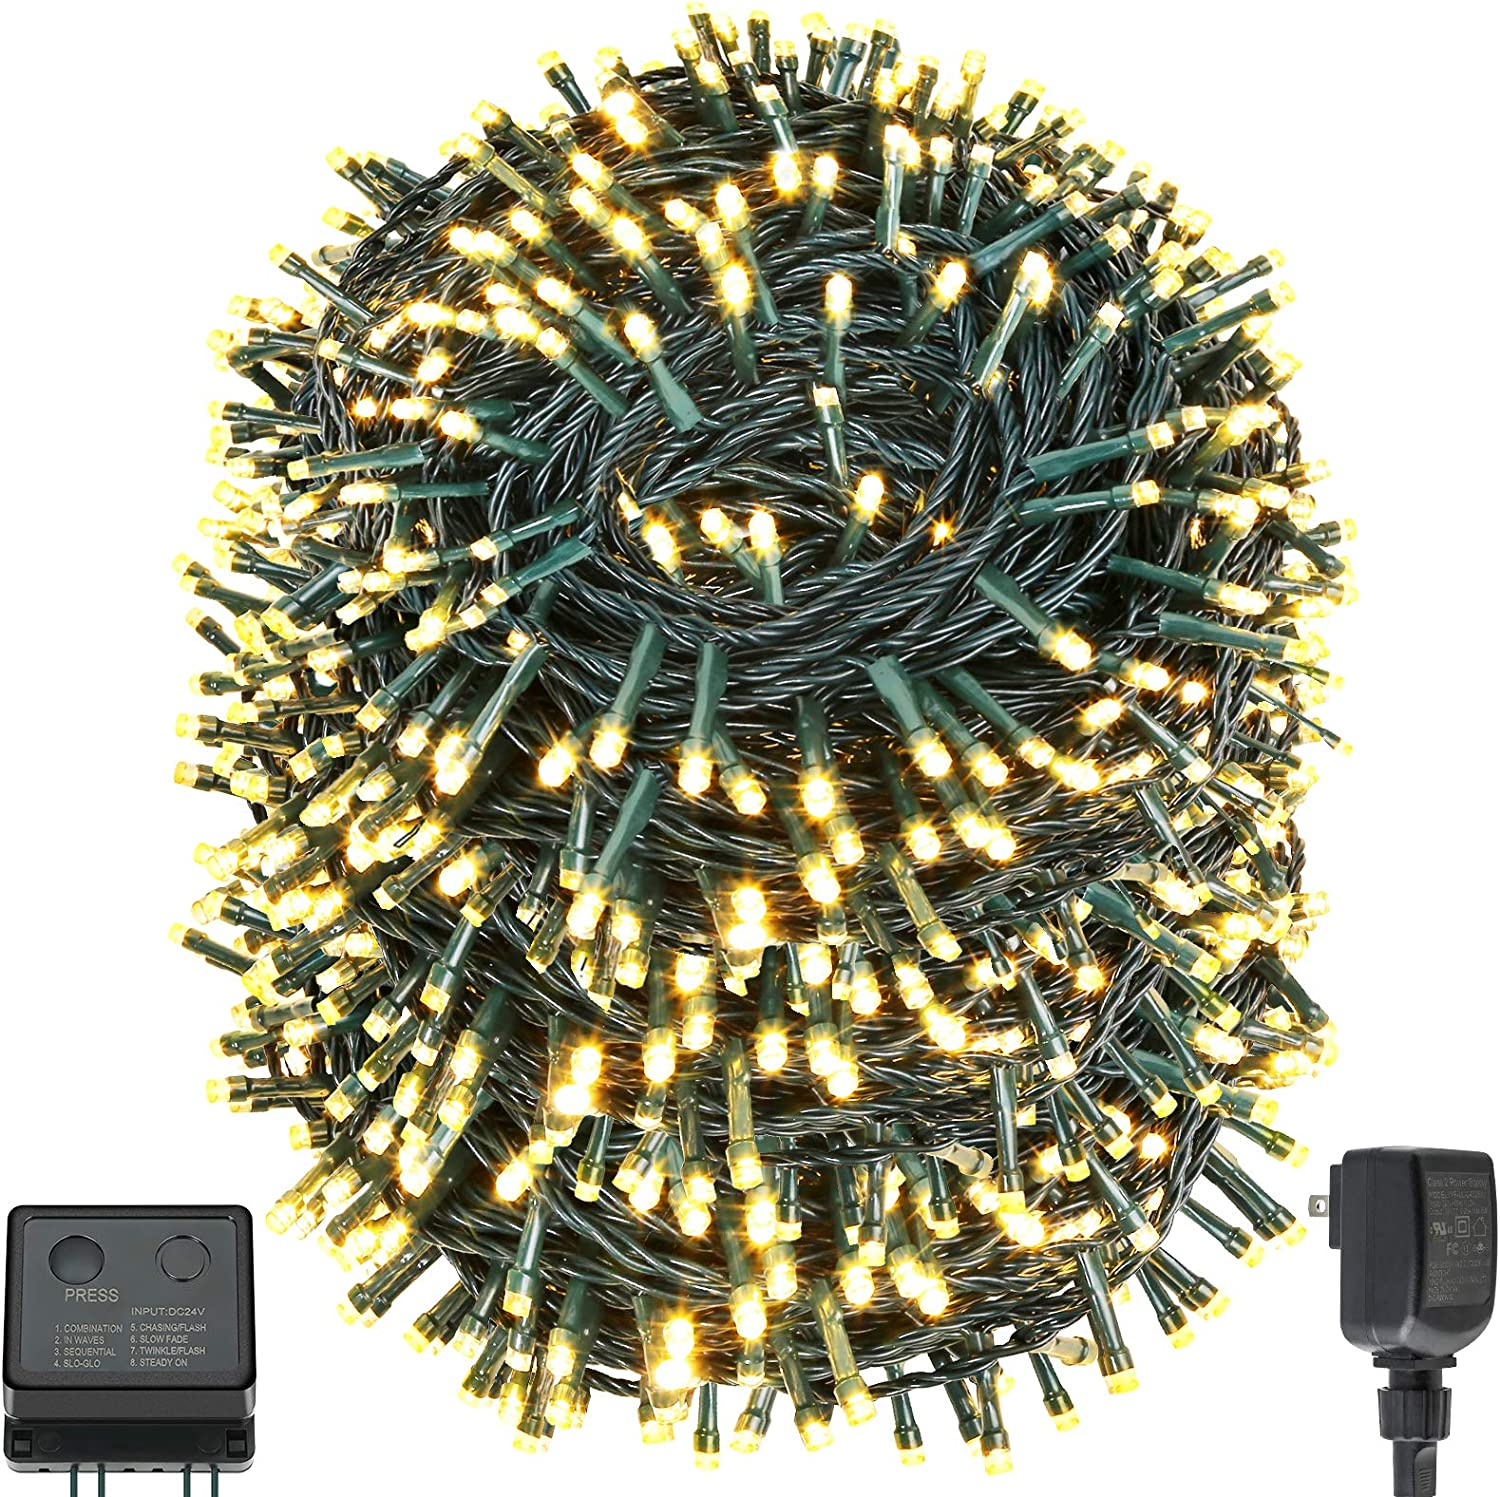 QUWIN Led Outdoor Christmas String Lights, 279Ft 800 LED UL Certified 8 Lighting Modes, Indoor & Outside Waterproof Fairy Light for Christmas Tree, Patio, Wedding, Party (279 Ft Warm-White)